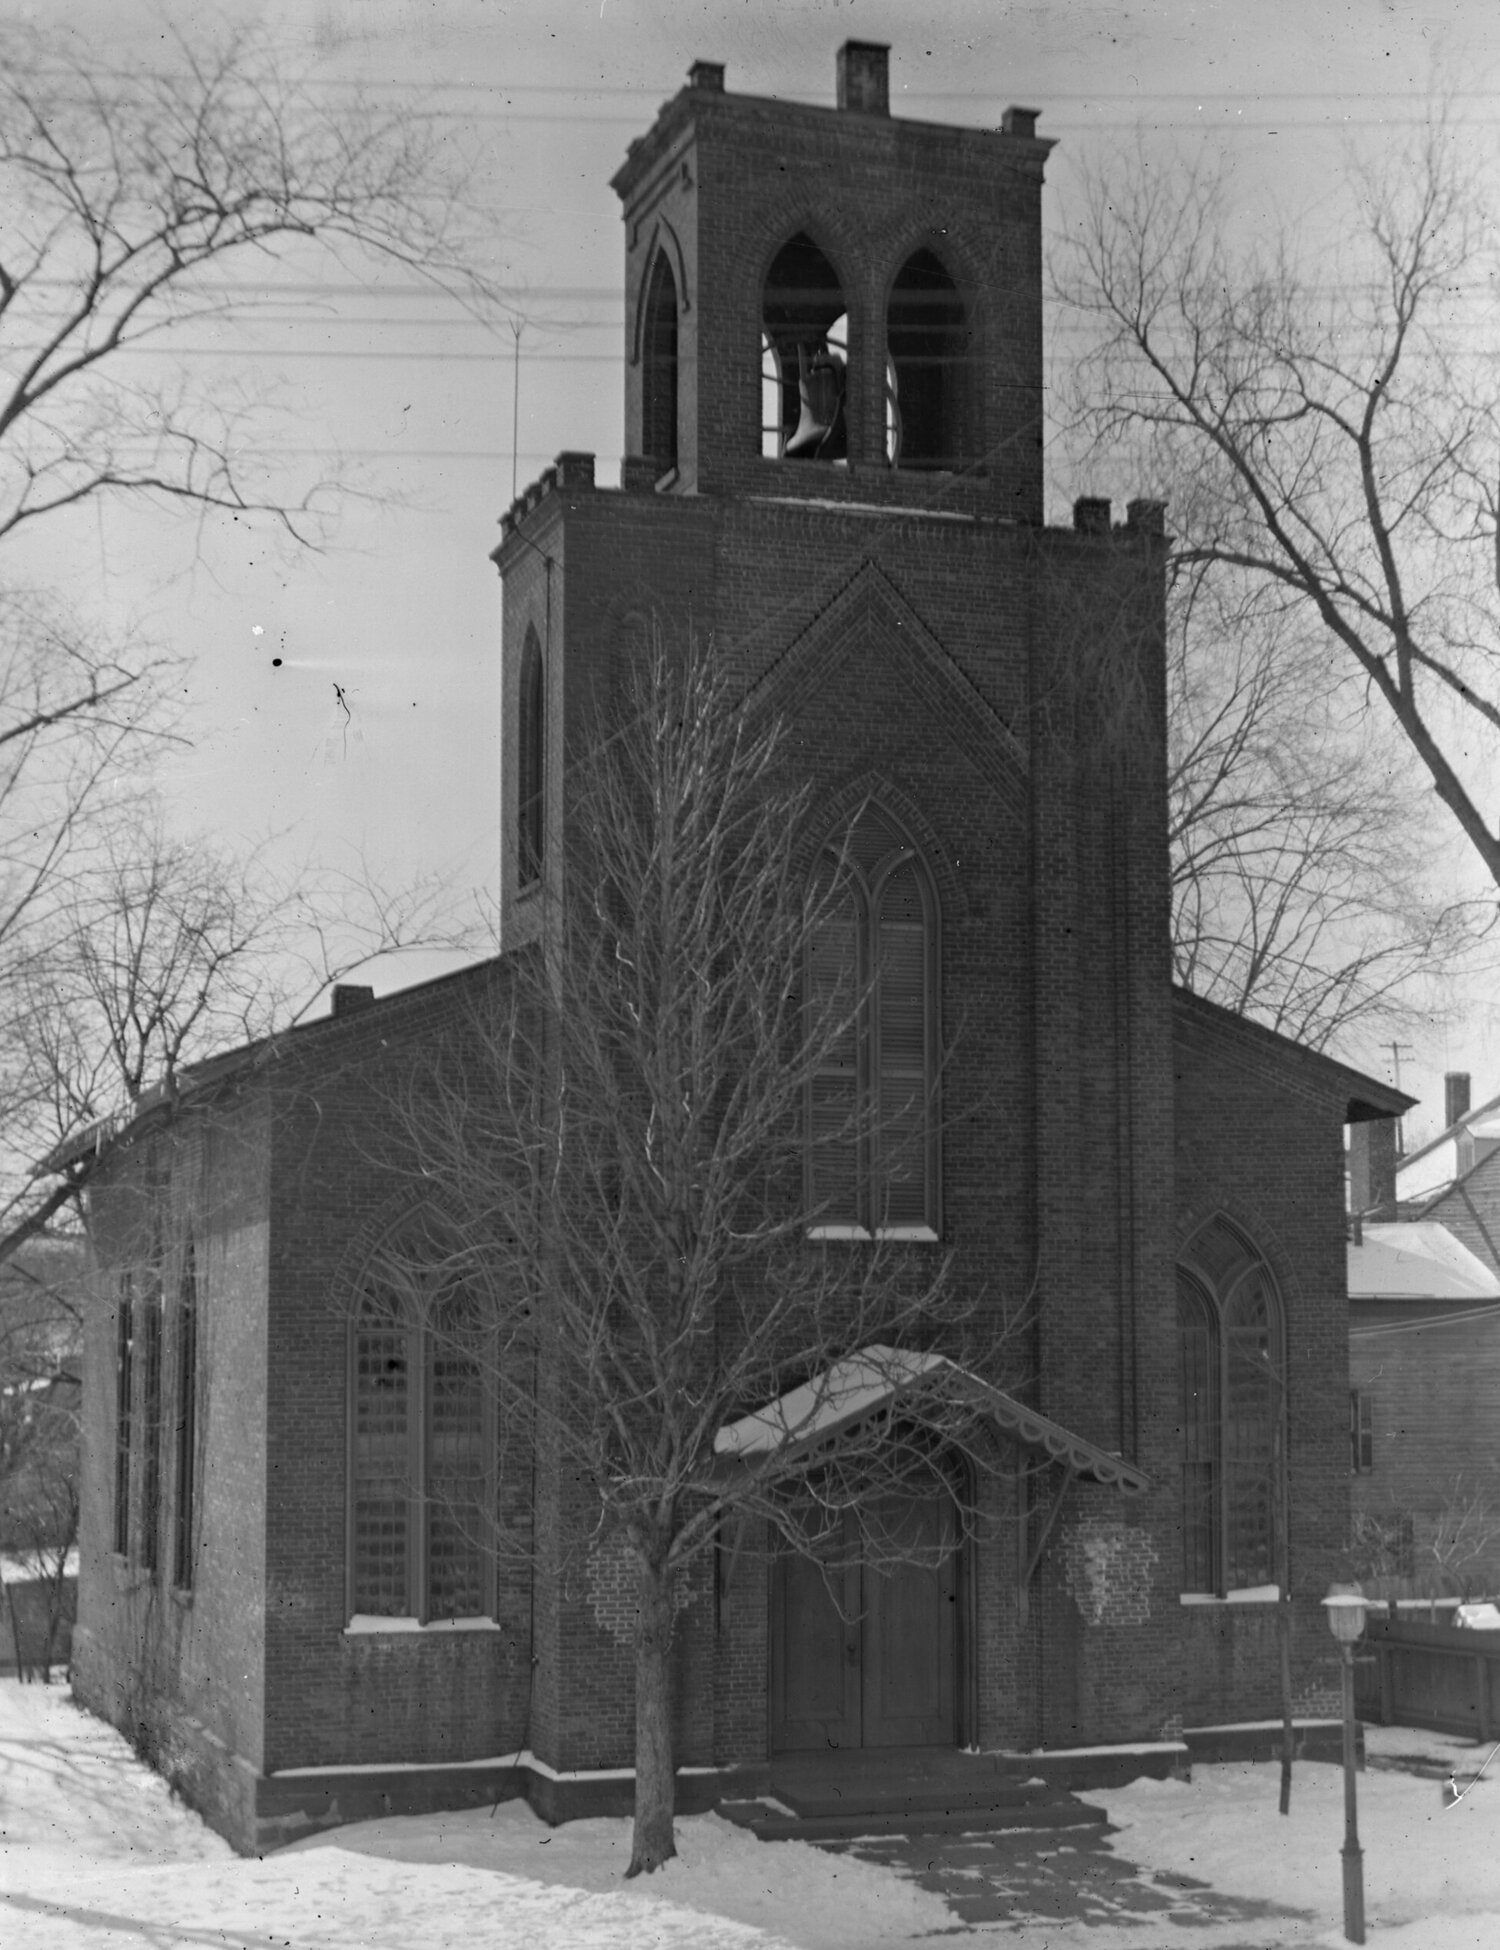 The second St. Luke's Episcopal Church immediately after it was vacated in 1896. This was previously thought to be the earliest view of the church in existence, and shows the bell tower which was added much later, rather than incorporated into Thomas Cole's original design. Photo from the S. E. Davis Negatives Collection, Vedder Research Library.